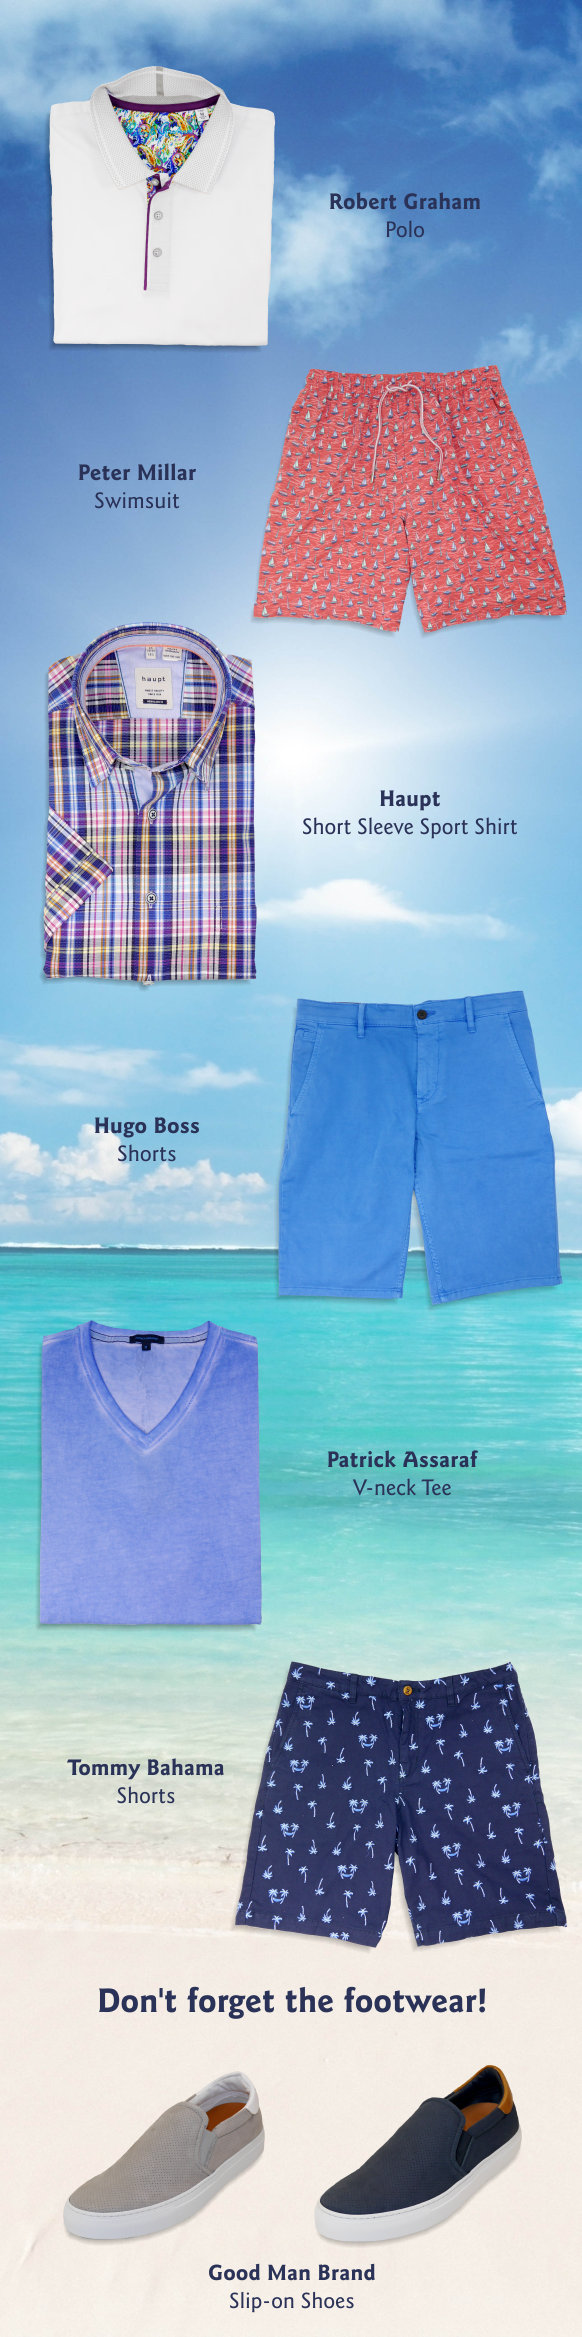 Tropical background with clothing items from some of our most popular brands.